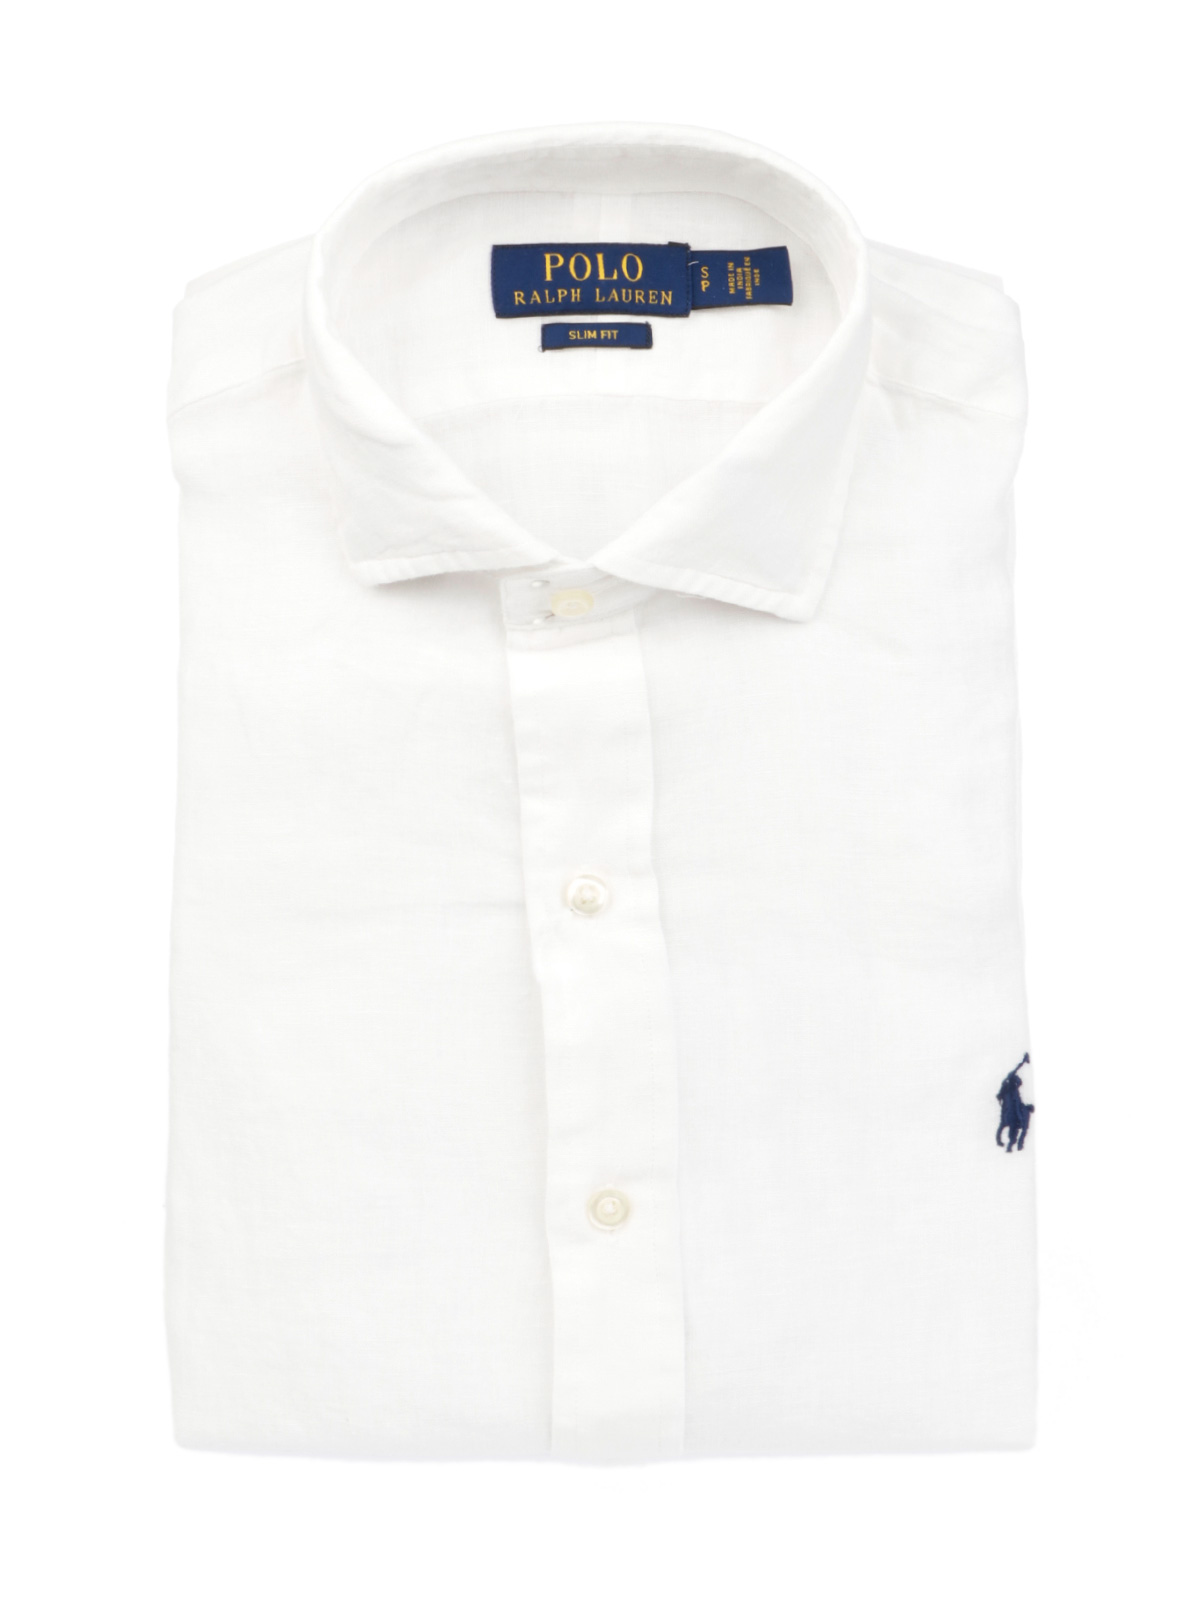 7b0767cdc POLO RALPH LAUREN Men s Linen Shirt White